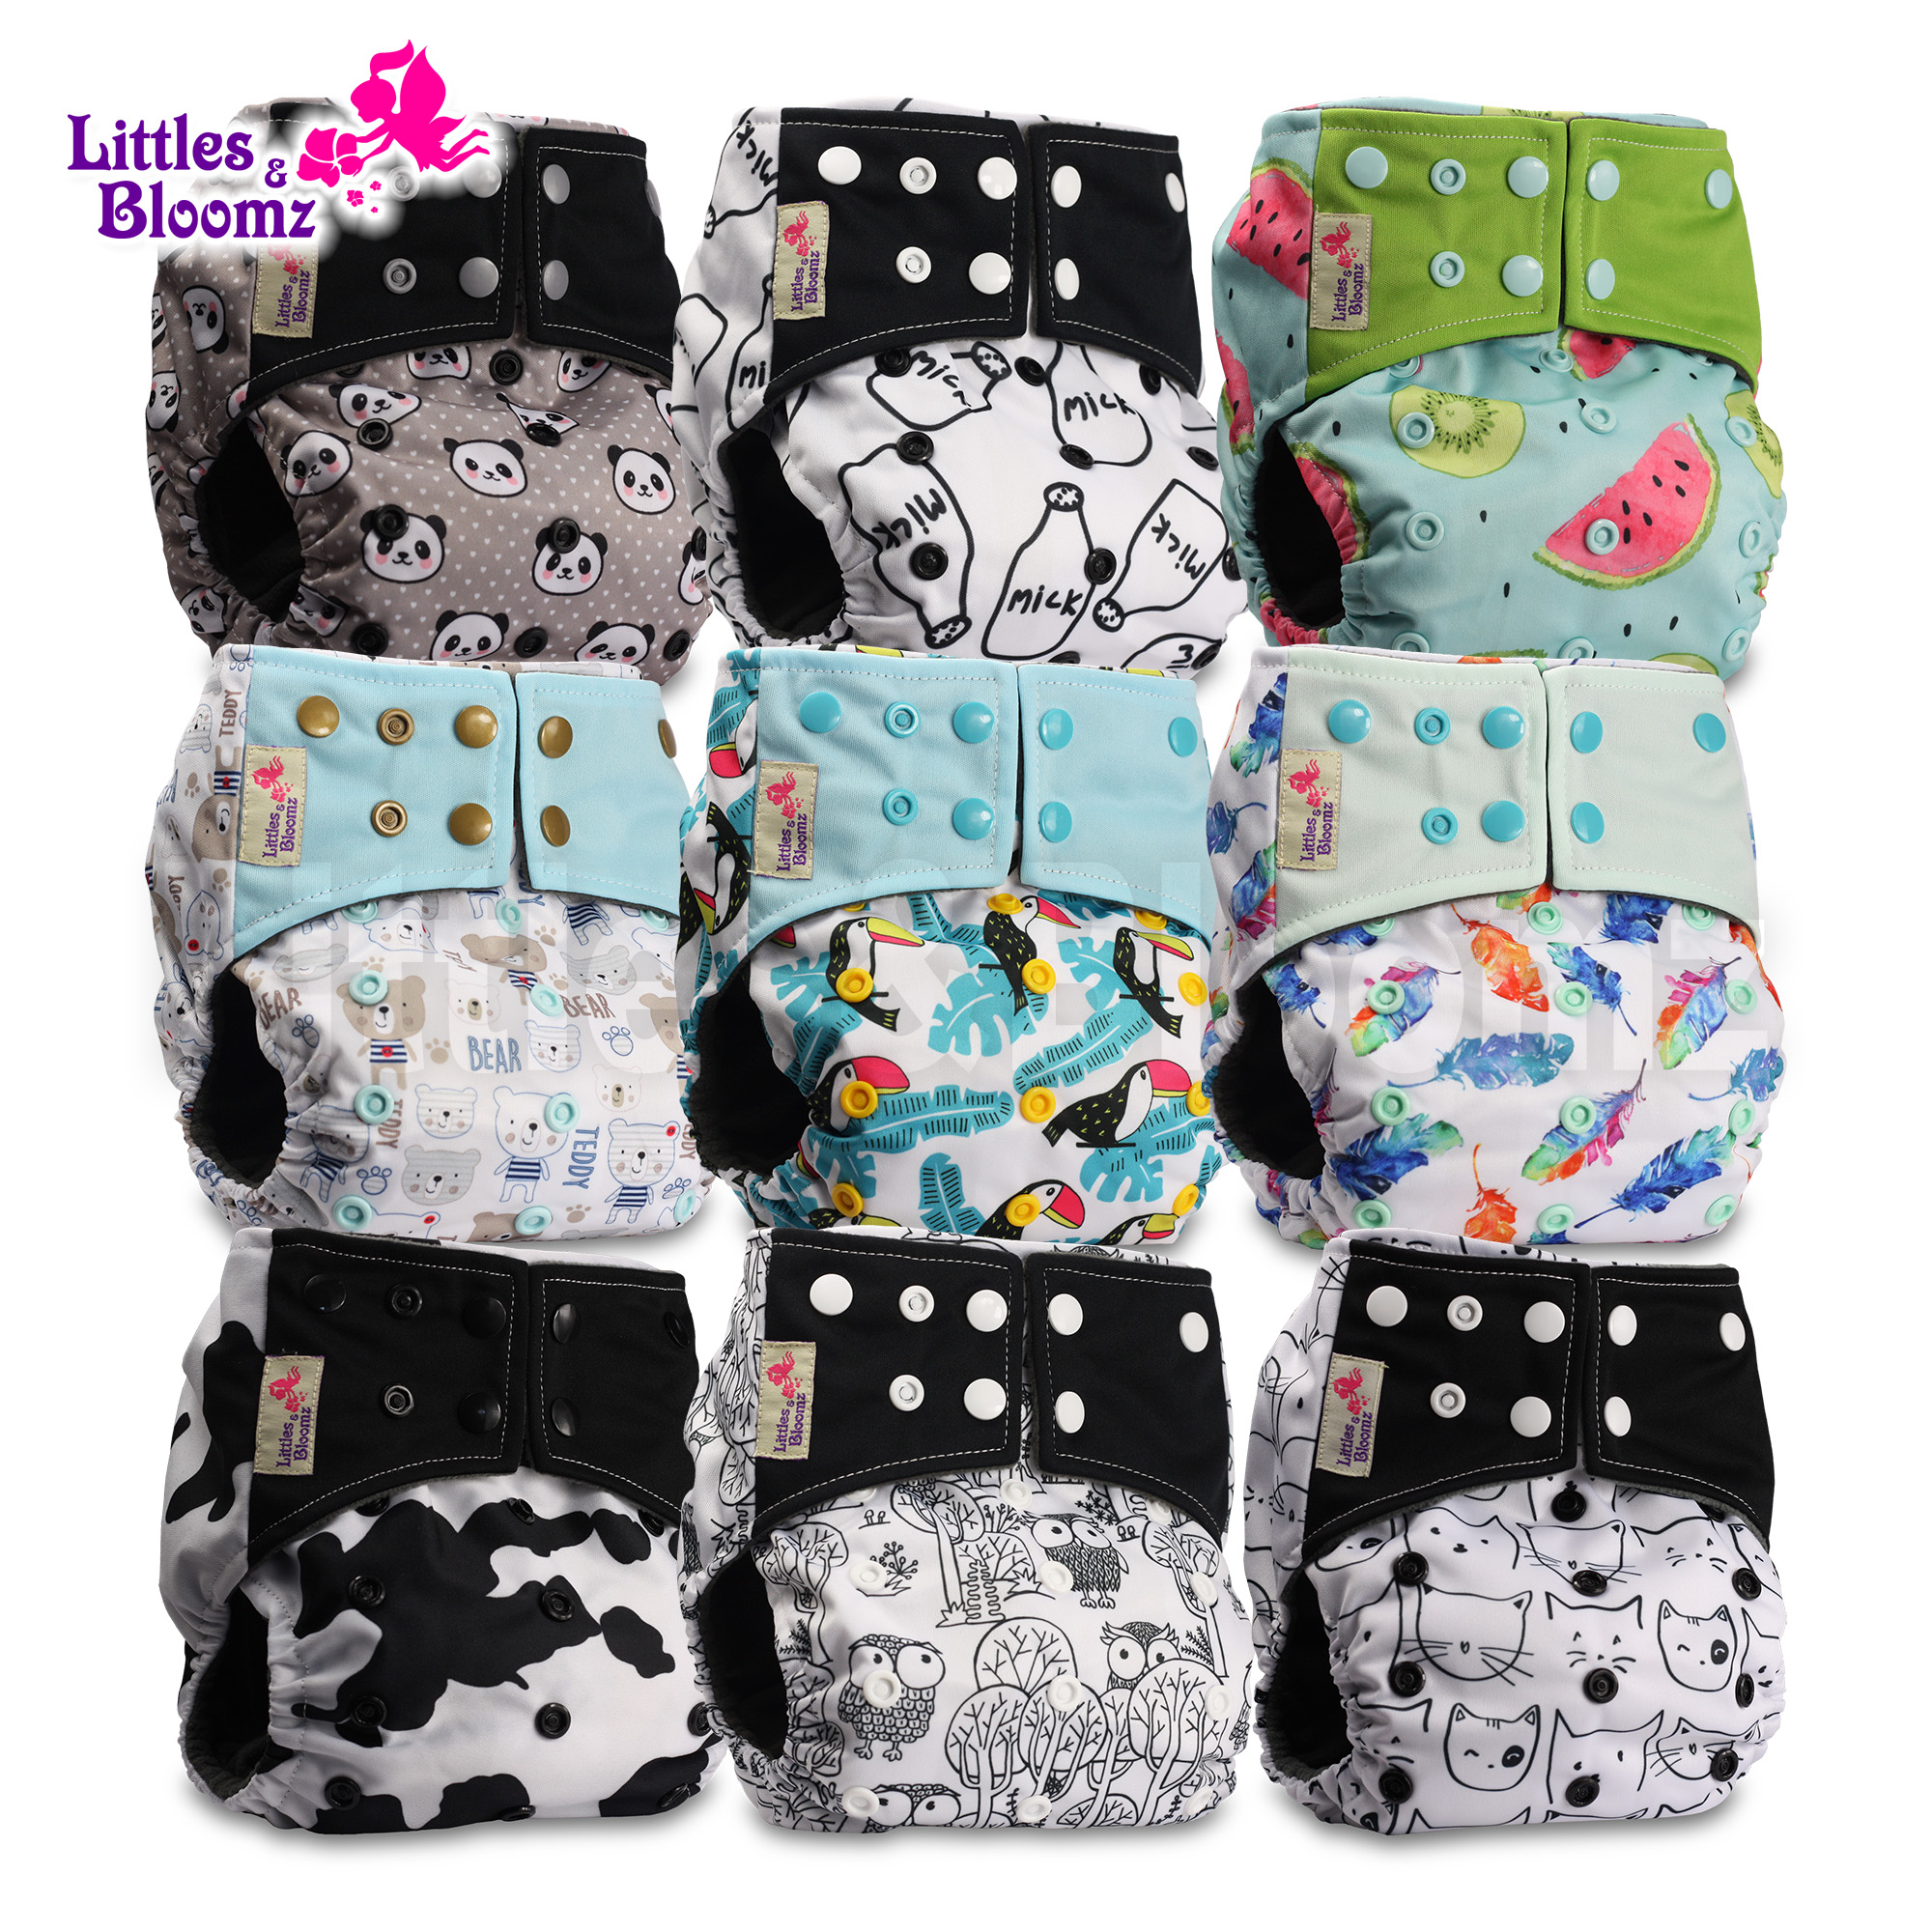 Littles /& Bloomz with 2 Bamboo Inserts Reusable Pocket Real Cloth Nappy Washable Diaper Bamboo Charcoal Pattern 24